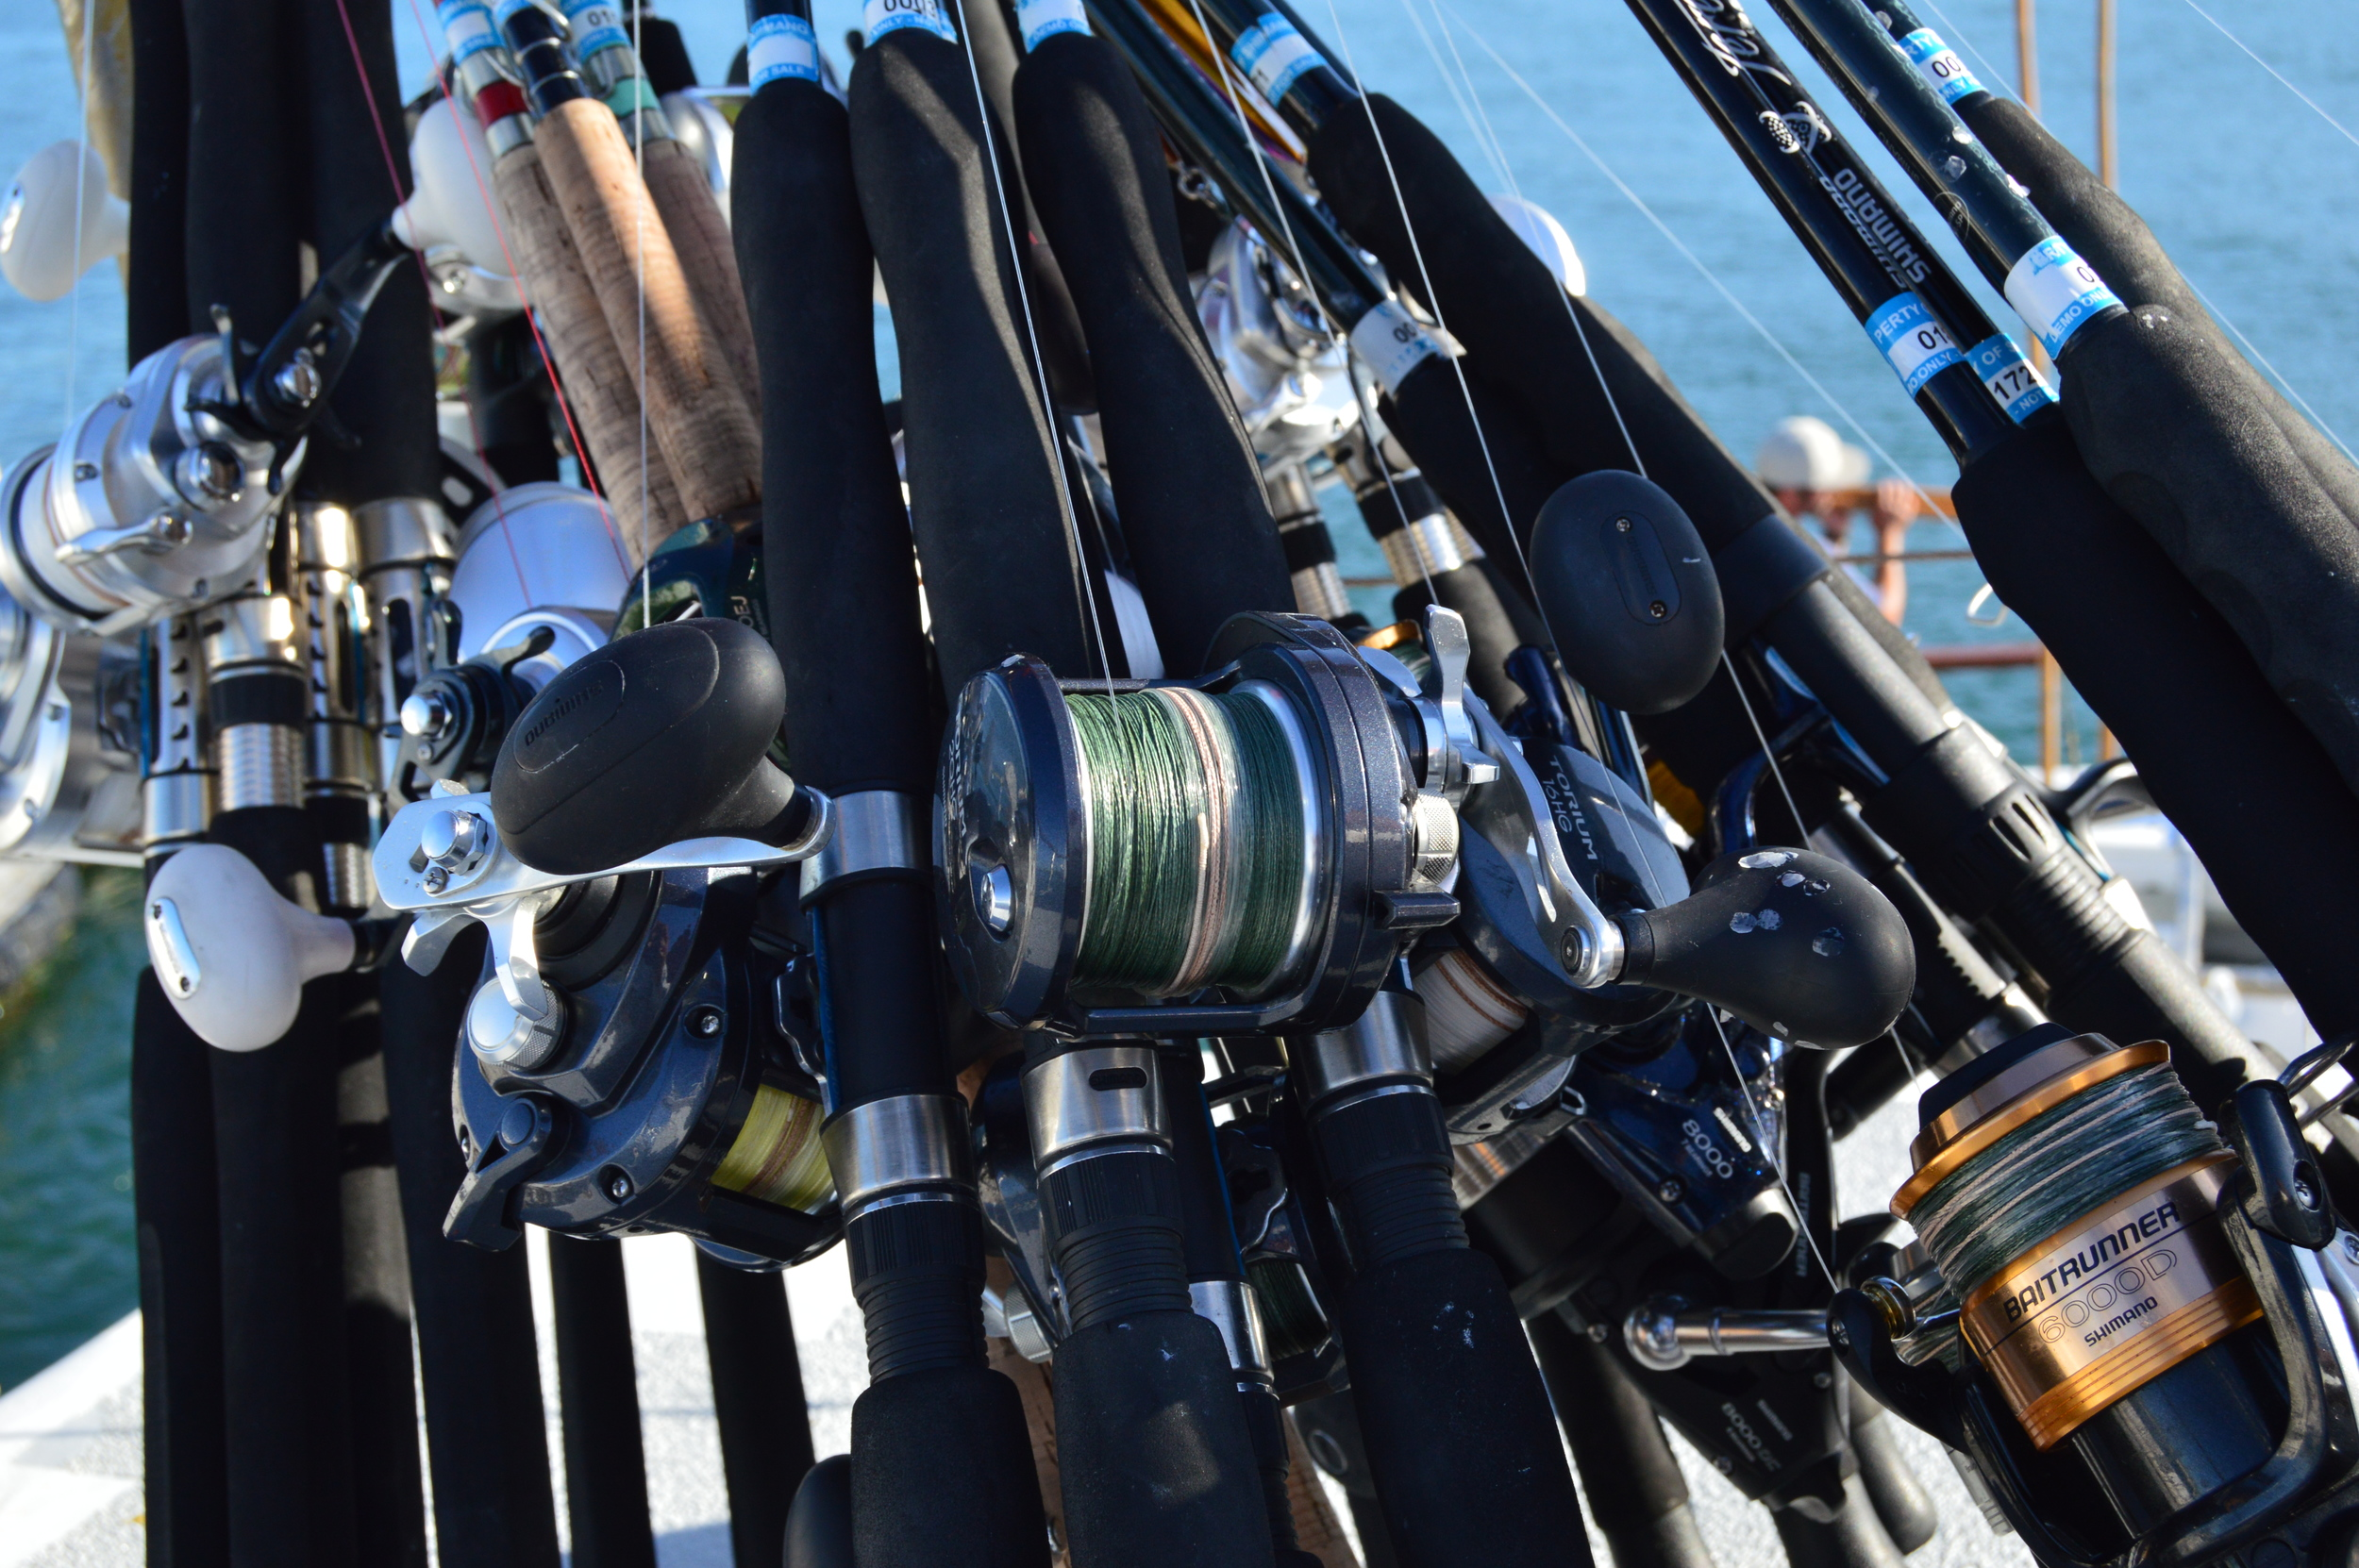 Some of the great Shimano rods and reels that will be used during the trip!